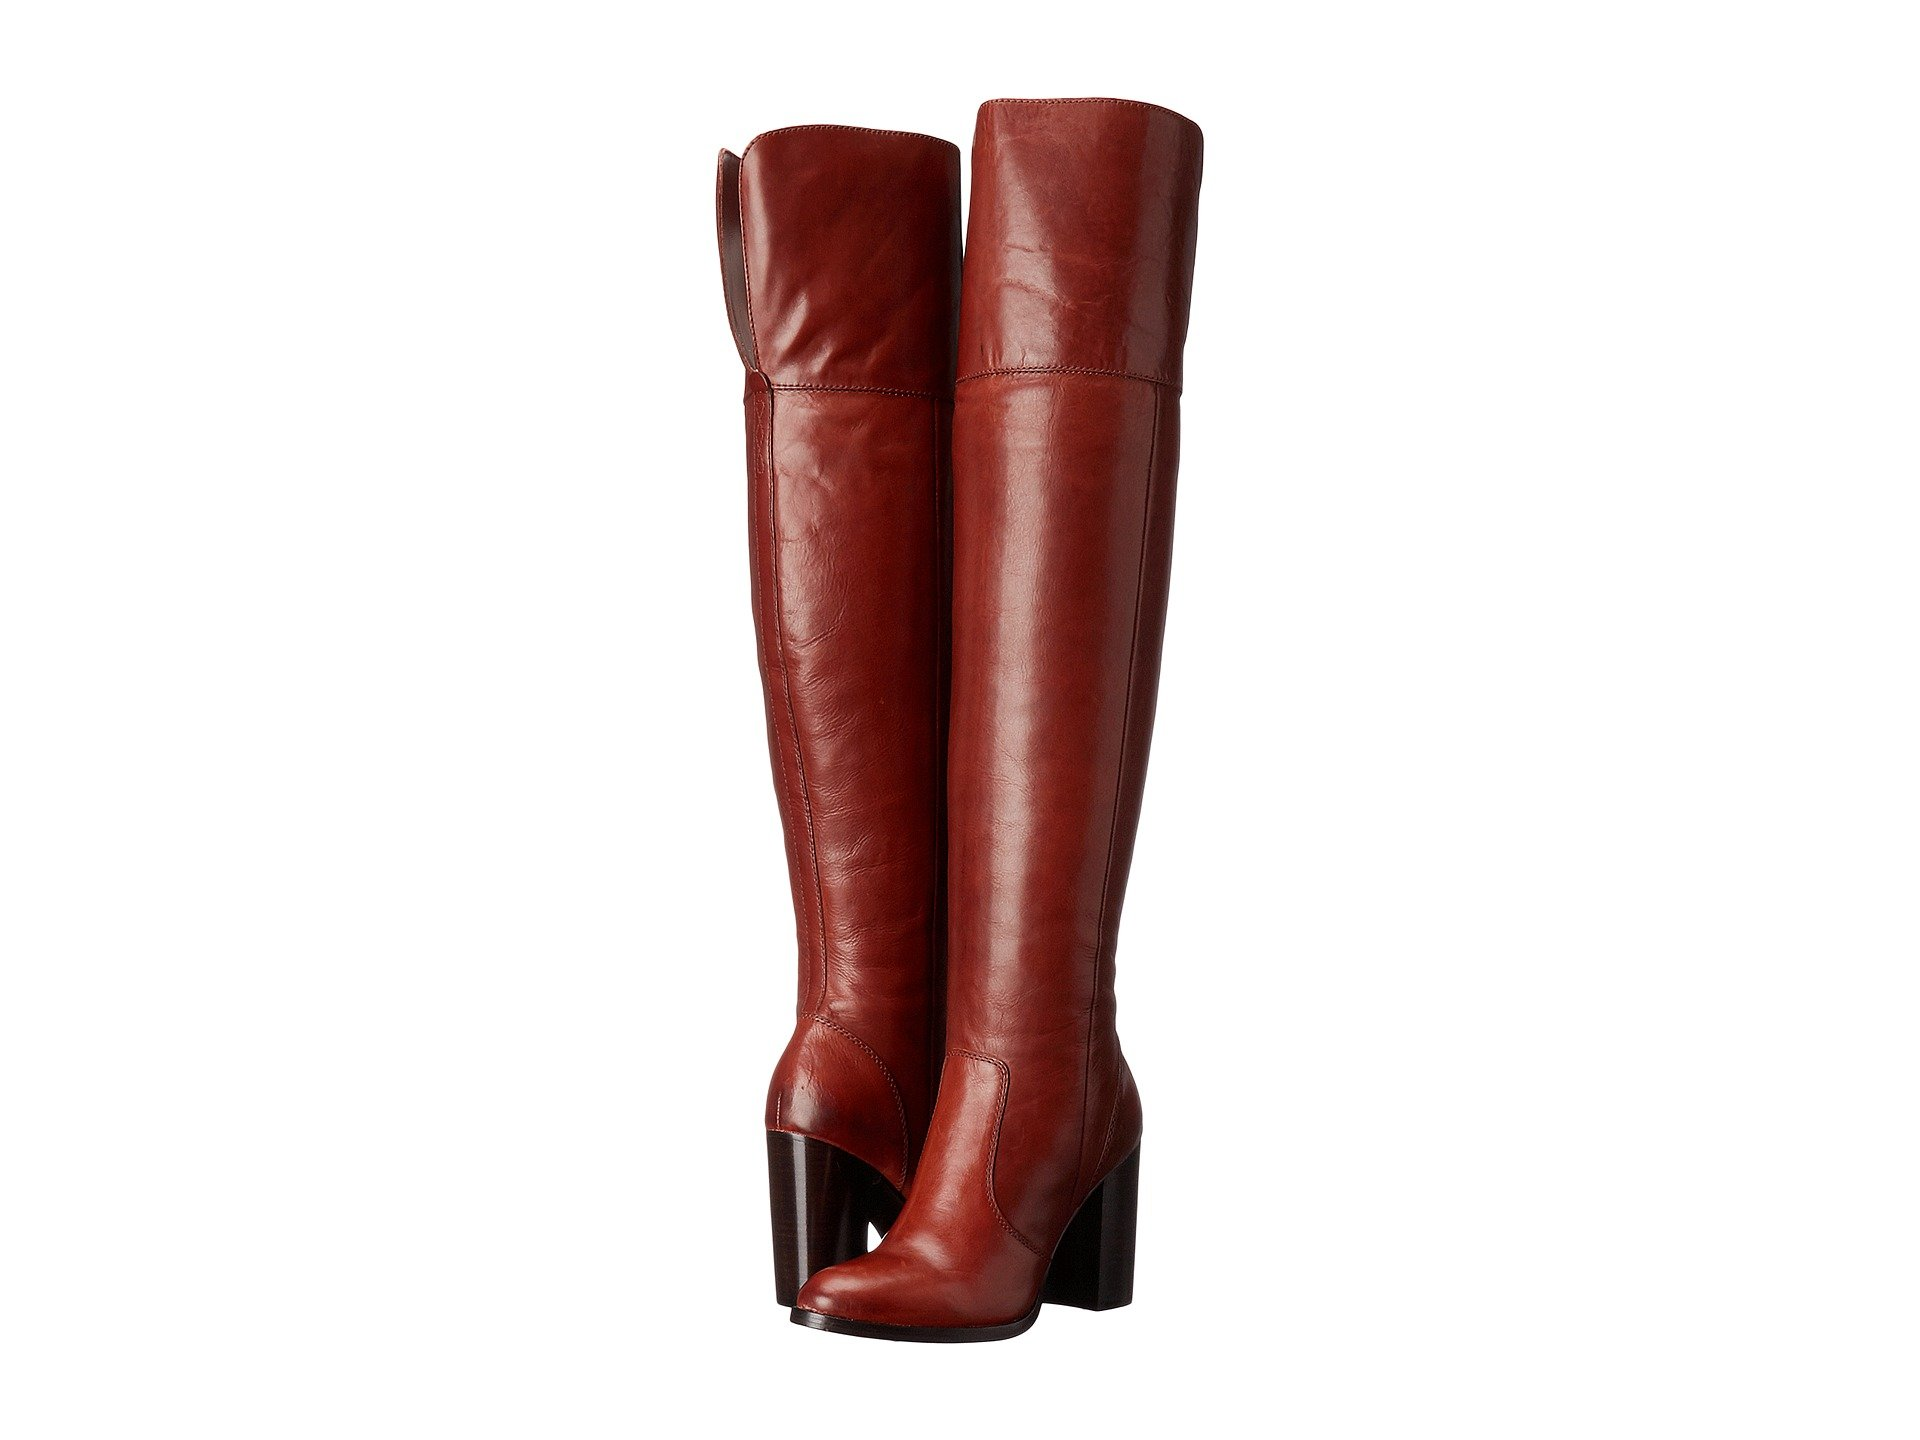 023c9a1630a Frye Claude Over-The-Knee